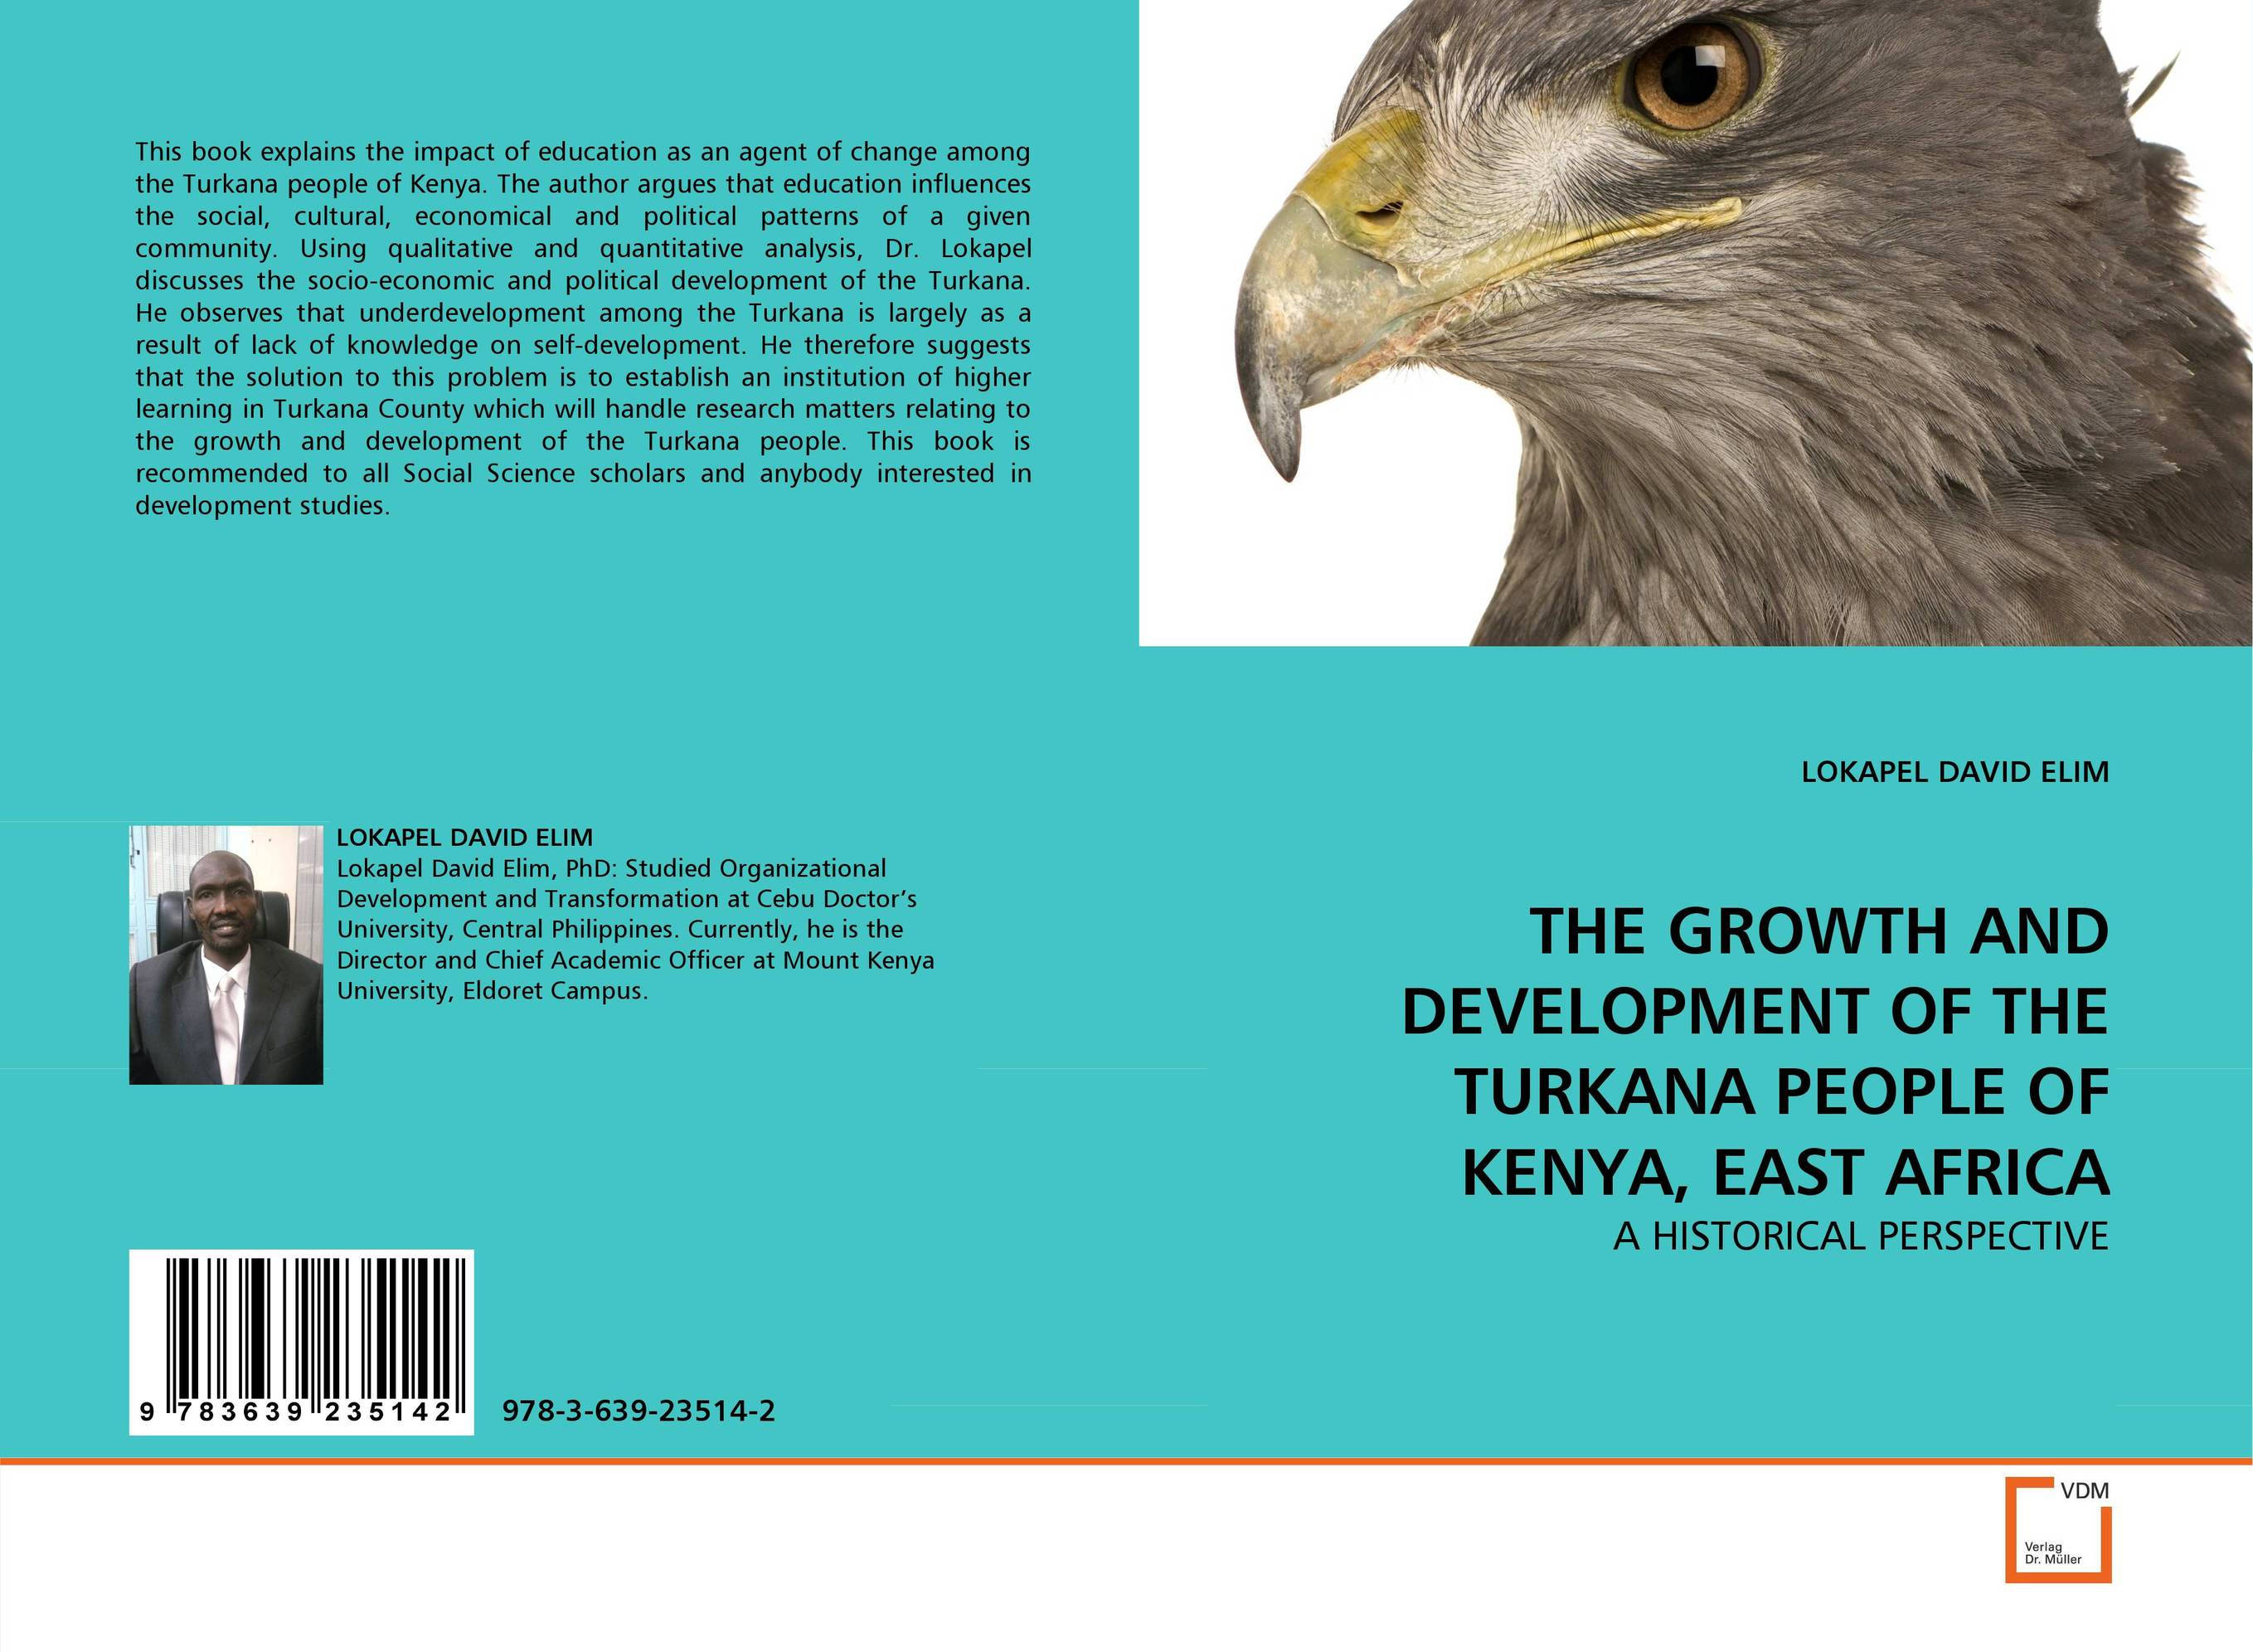 THE GROWTH AND DEVELOPMENT OF THE TURKANA PEOPLE OF KENYA, EAST AFRICA